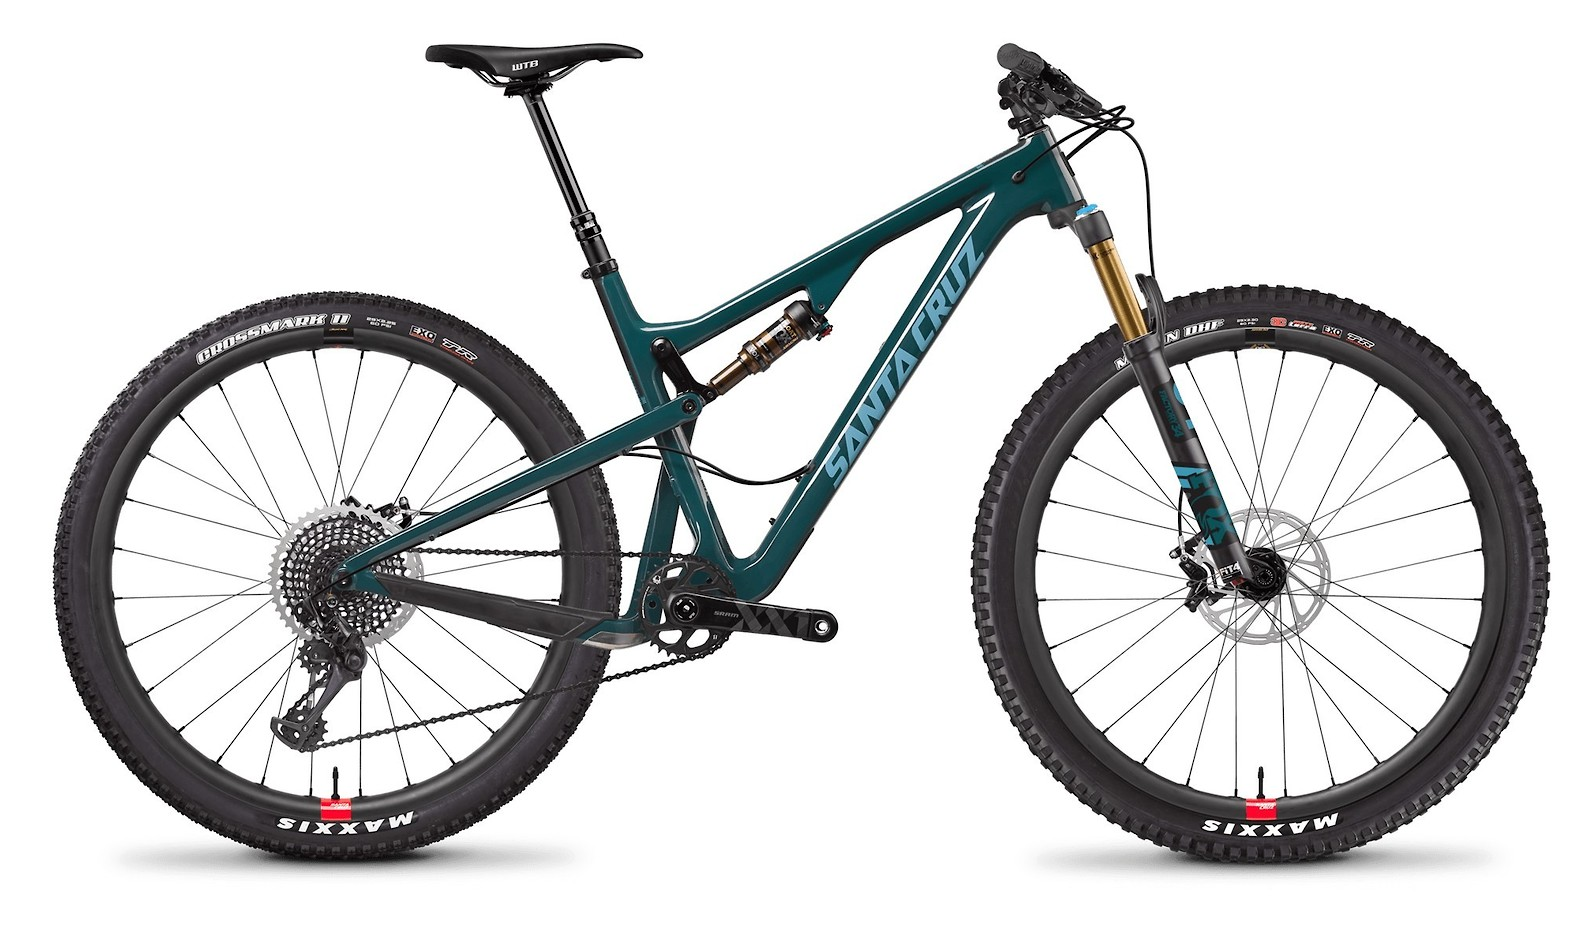 Tallboy Carbon CC XX1 Reserve Forest Green and Baby Blue